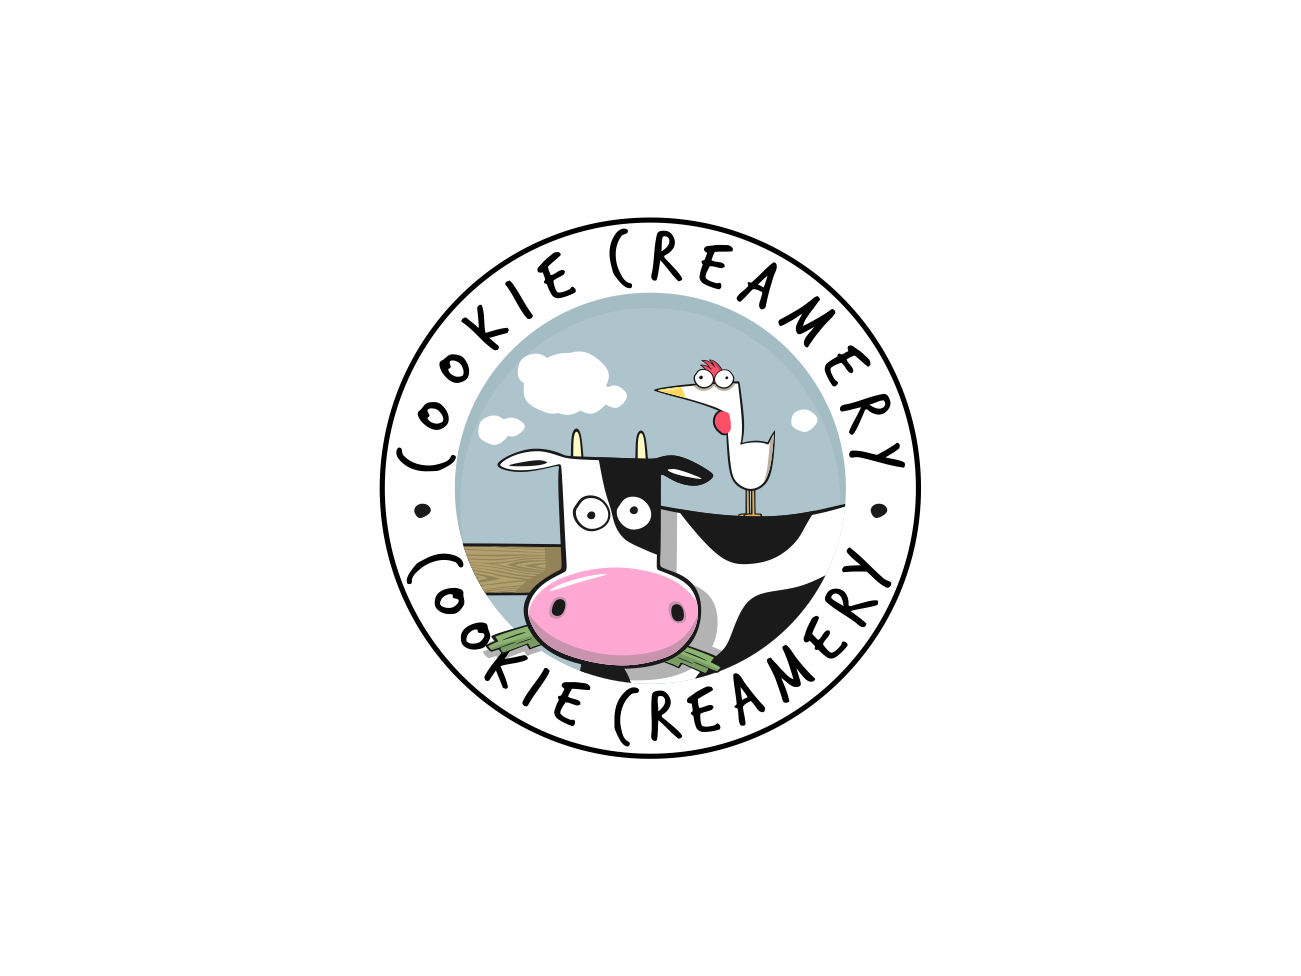 Cookie Creamery: Our hand-crafted ice cream and cookies cafe needs a logo!